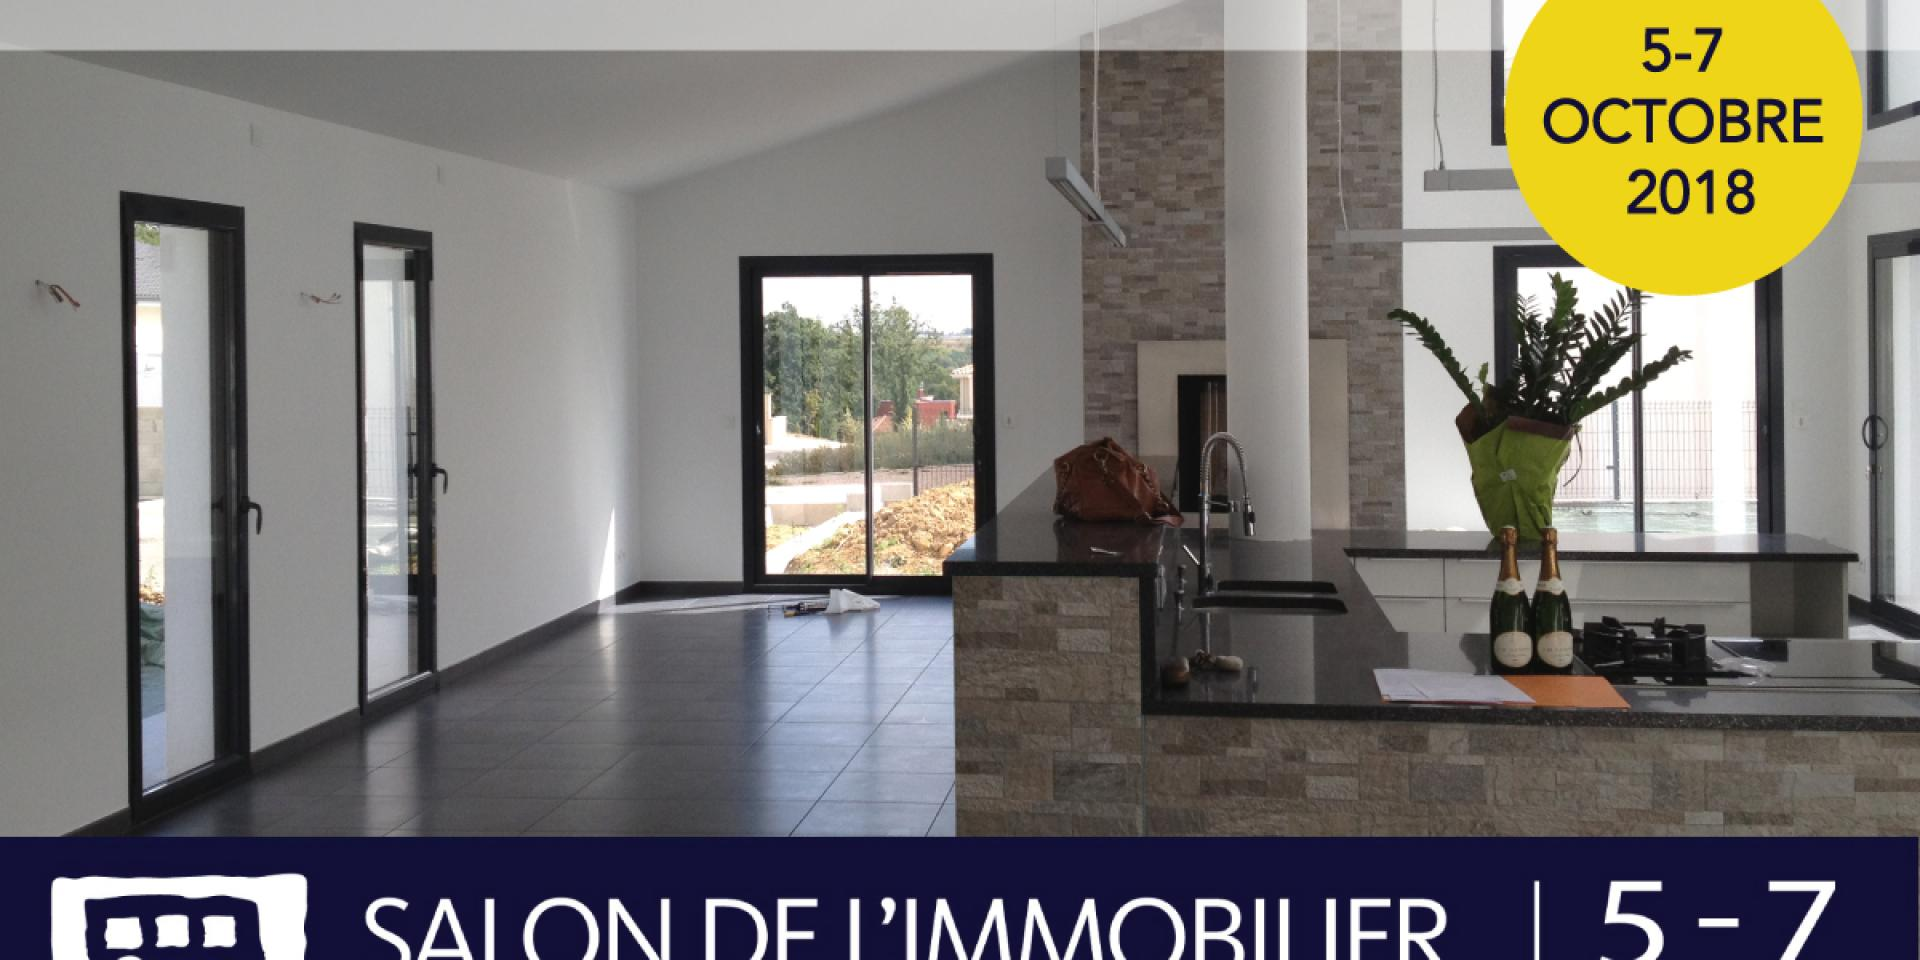 Salon de l'immobilier à Toulouse